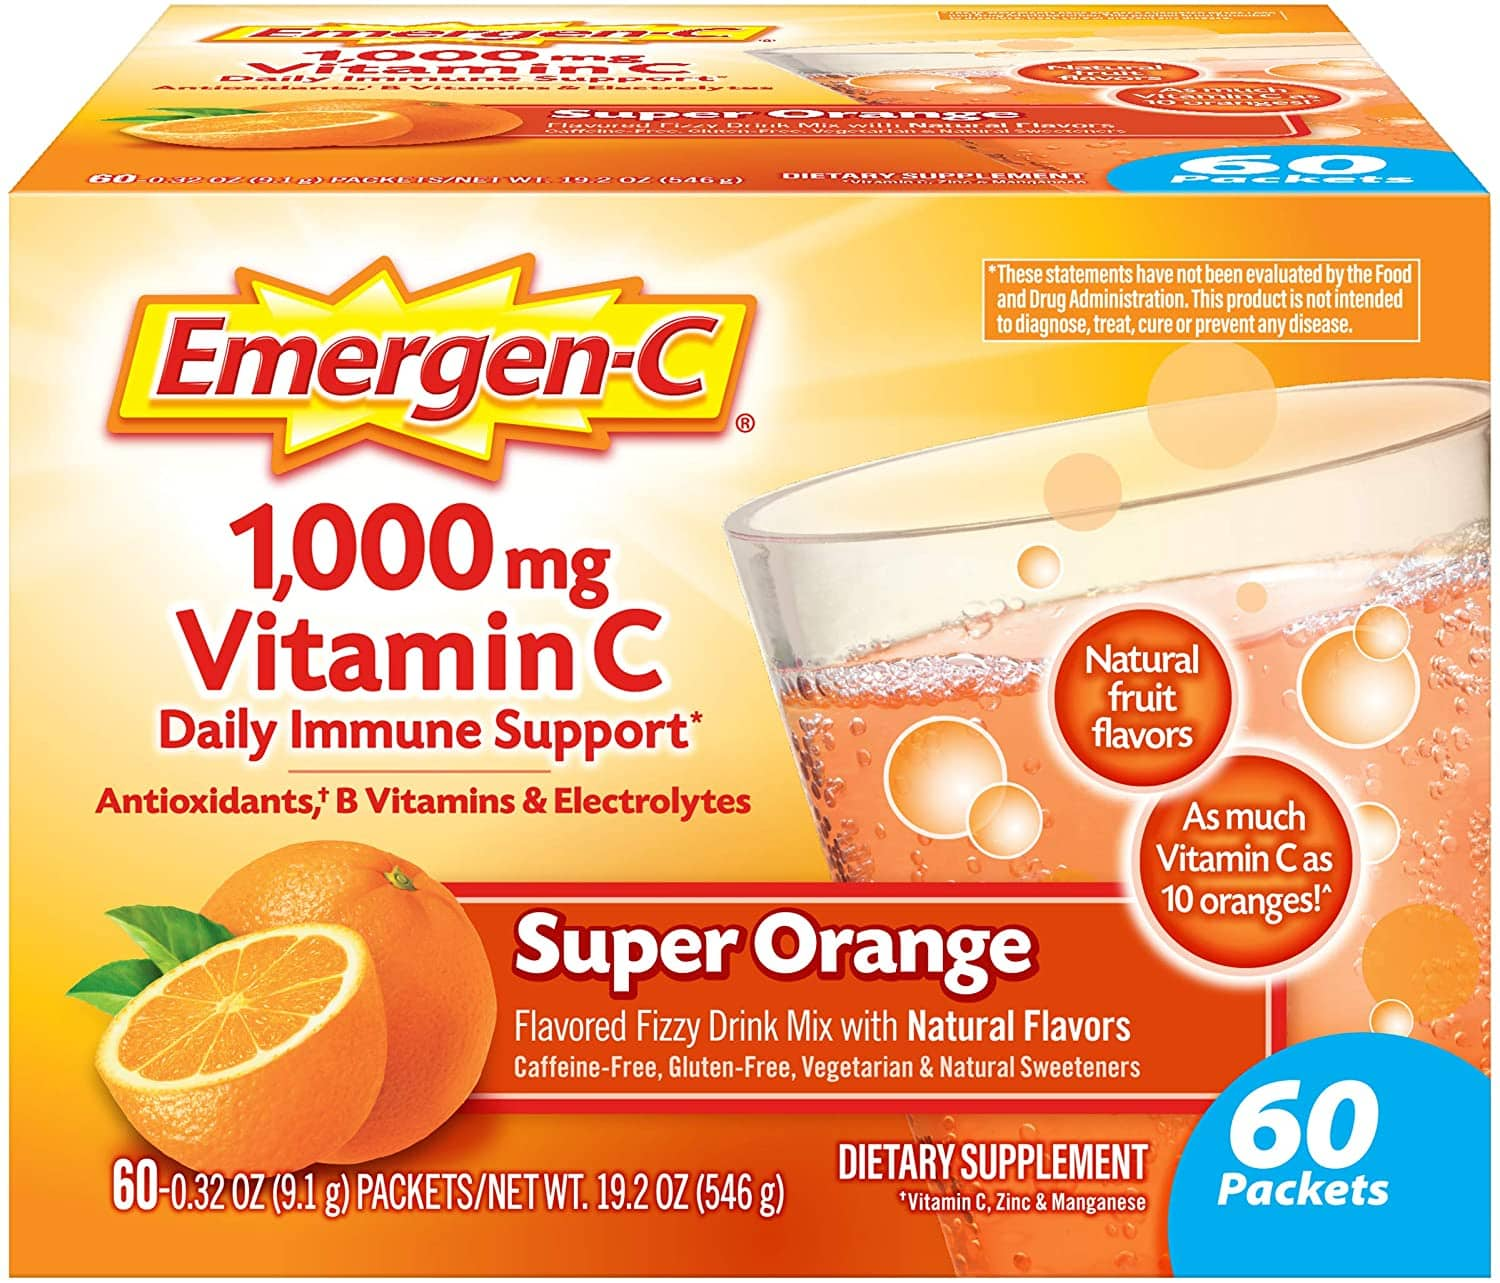 60-Ct 0.32-Oz Emergen-C 1000mg Vitamin C Supplement Fizzy Drink Mix (Super Orange) $11.80 w/ S&S + Free Shipping w/ Prime or on $25+